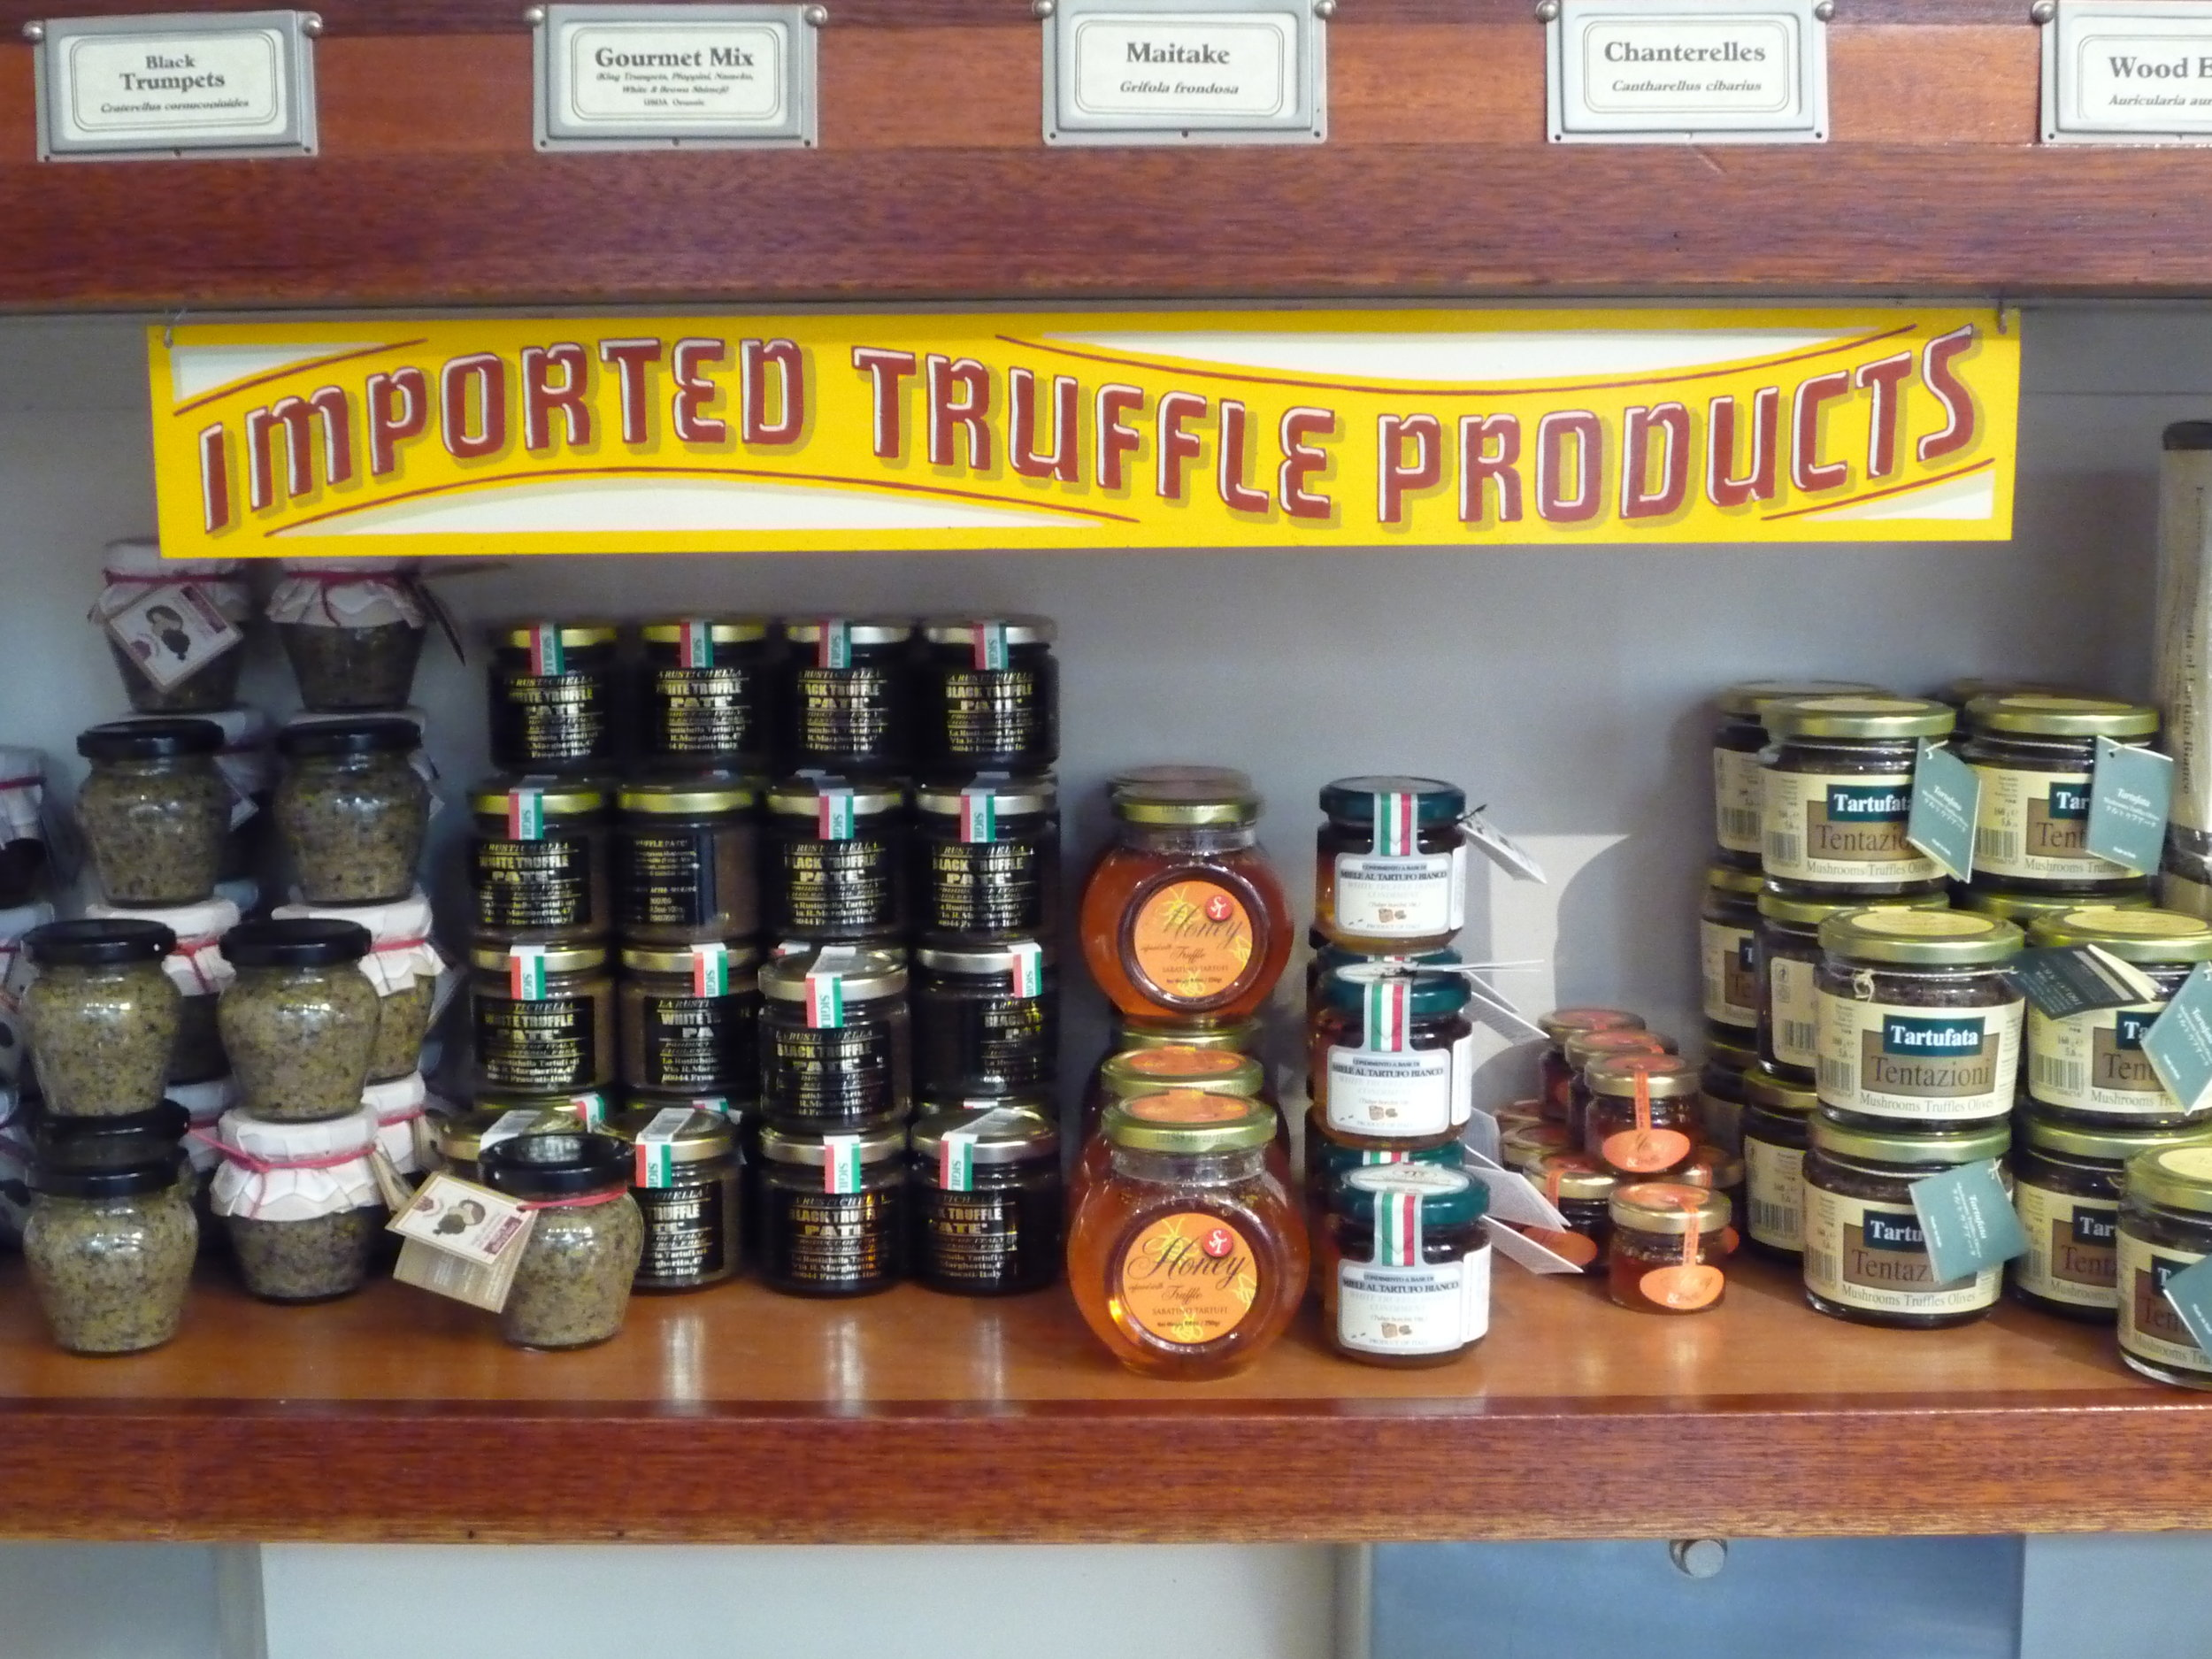 HAND-far-west-fungi-truffle-products-shelf-sign_4323724722_o.jpg